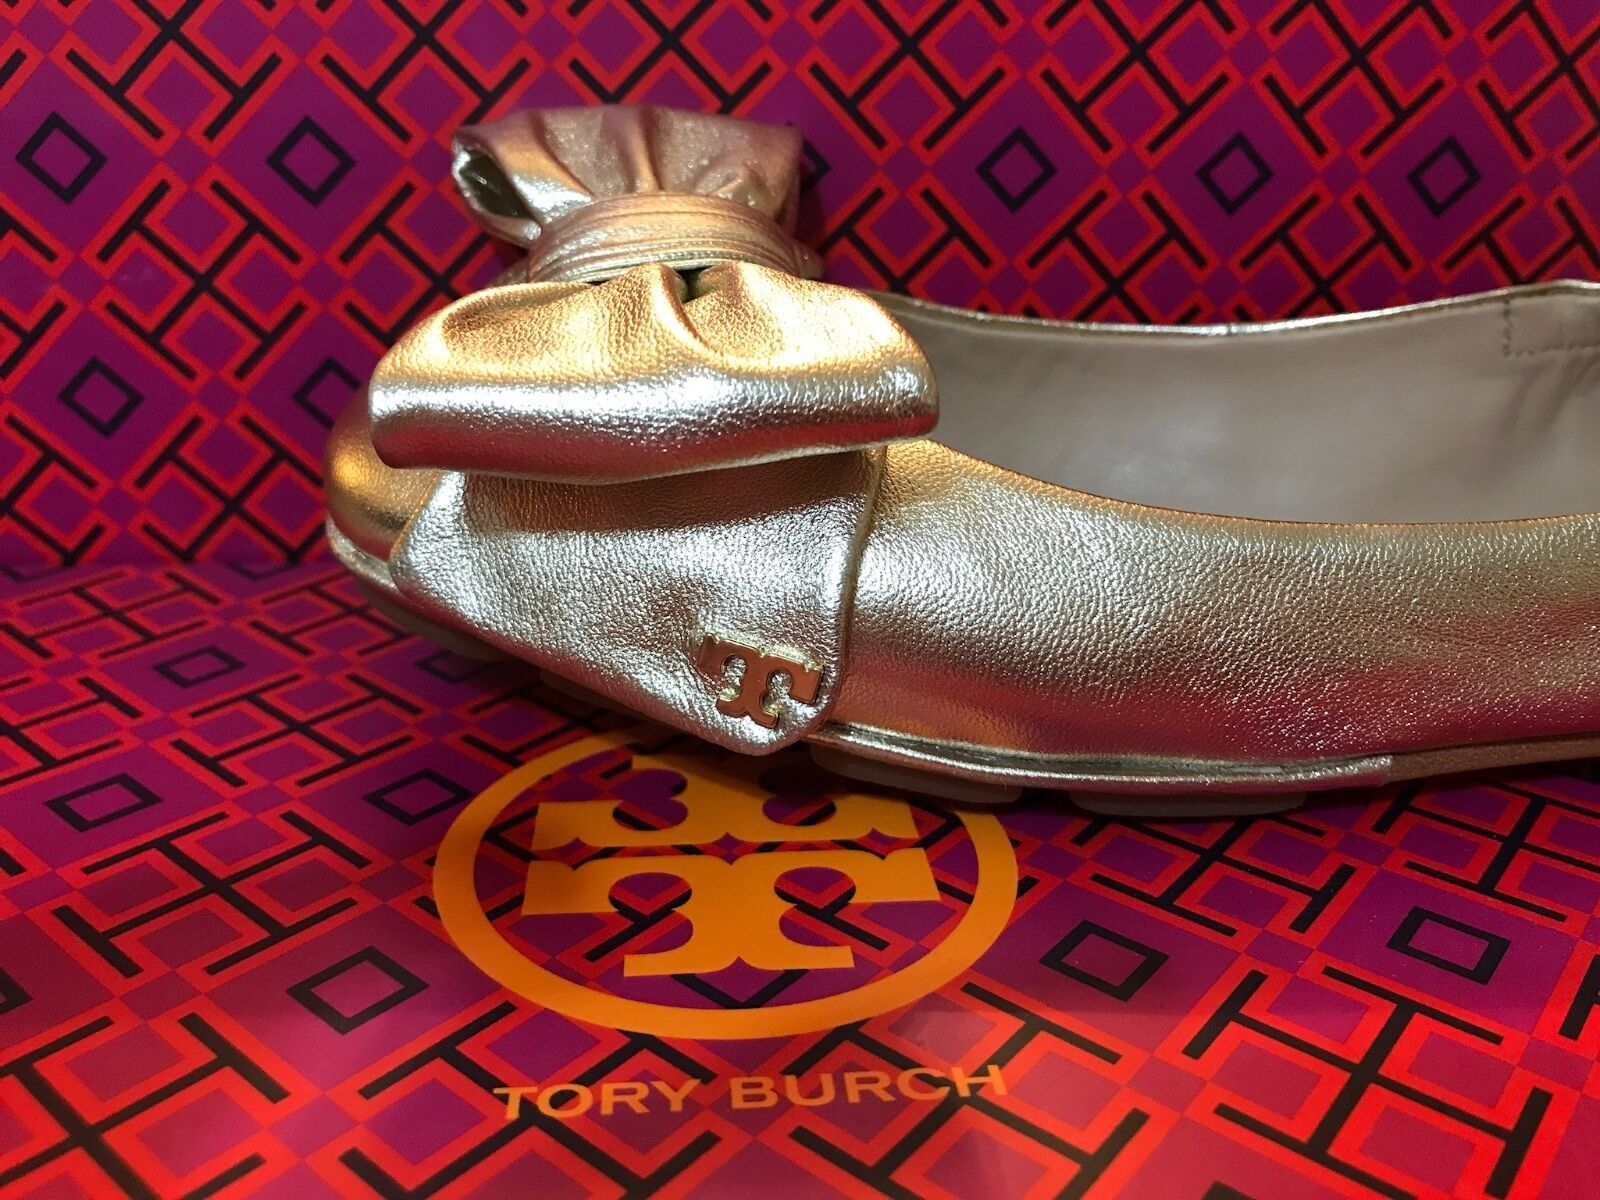 Tory Burch flats size 7, gold with box